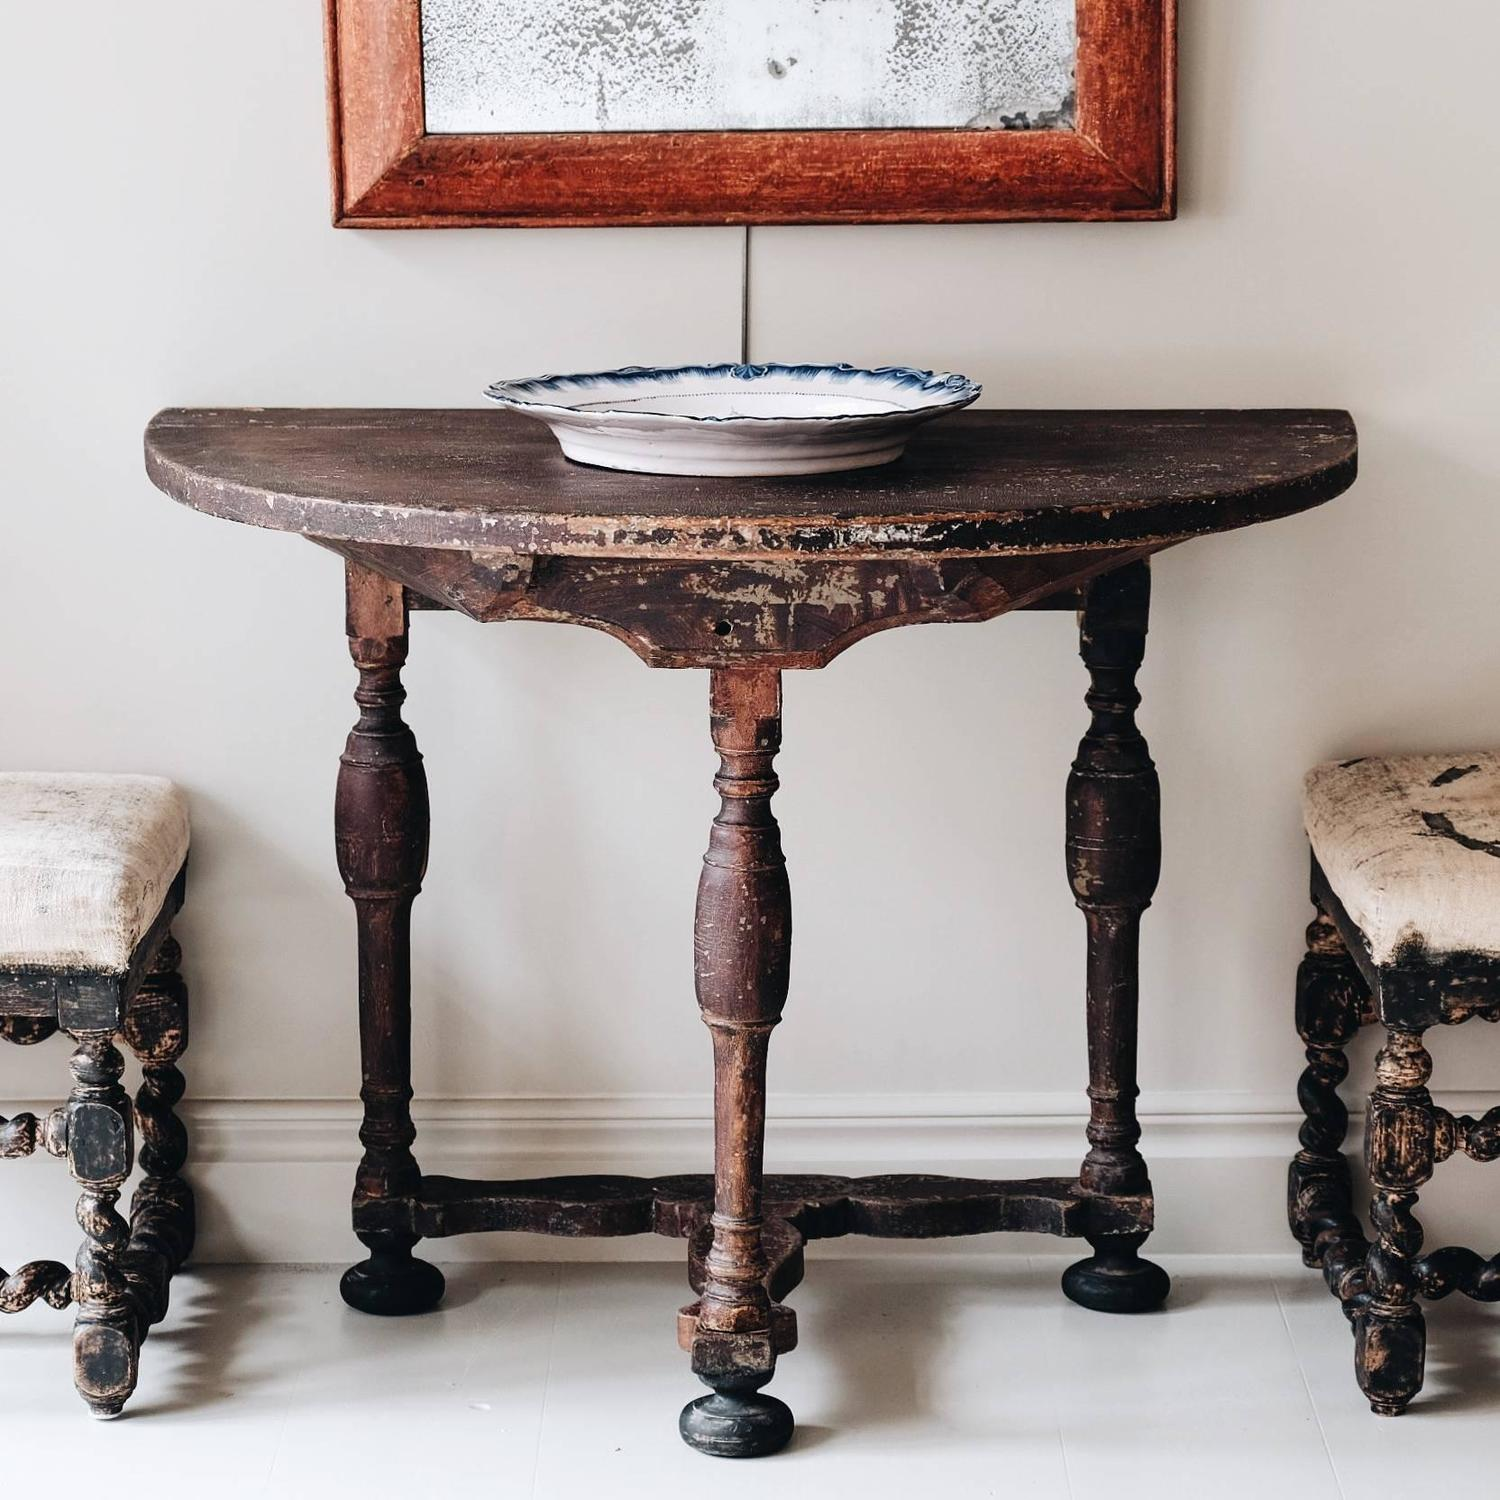 18th century swedish baroque demilune console for sale at - Baroque console table ...